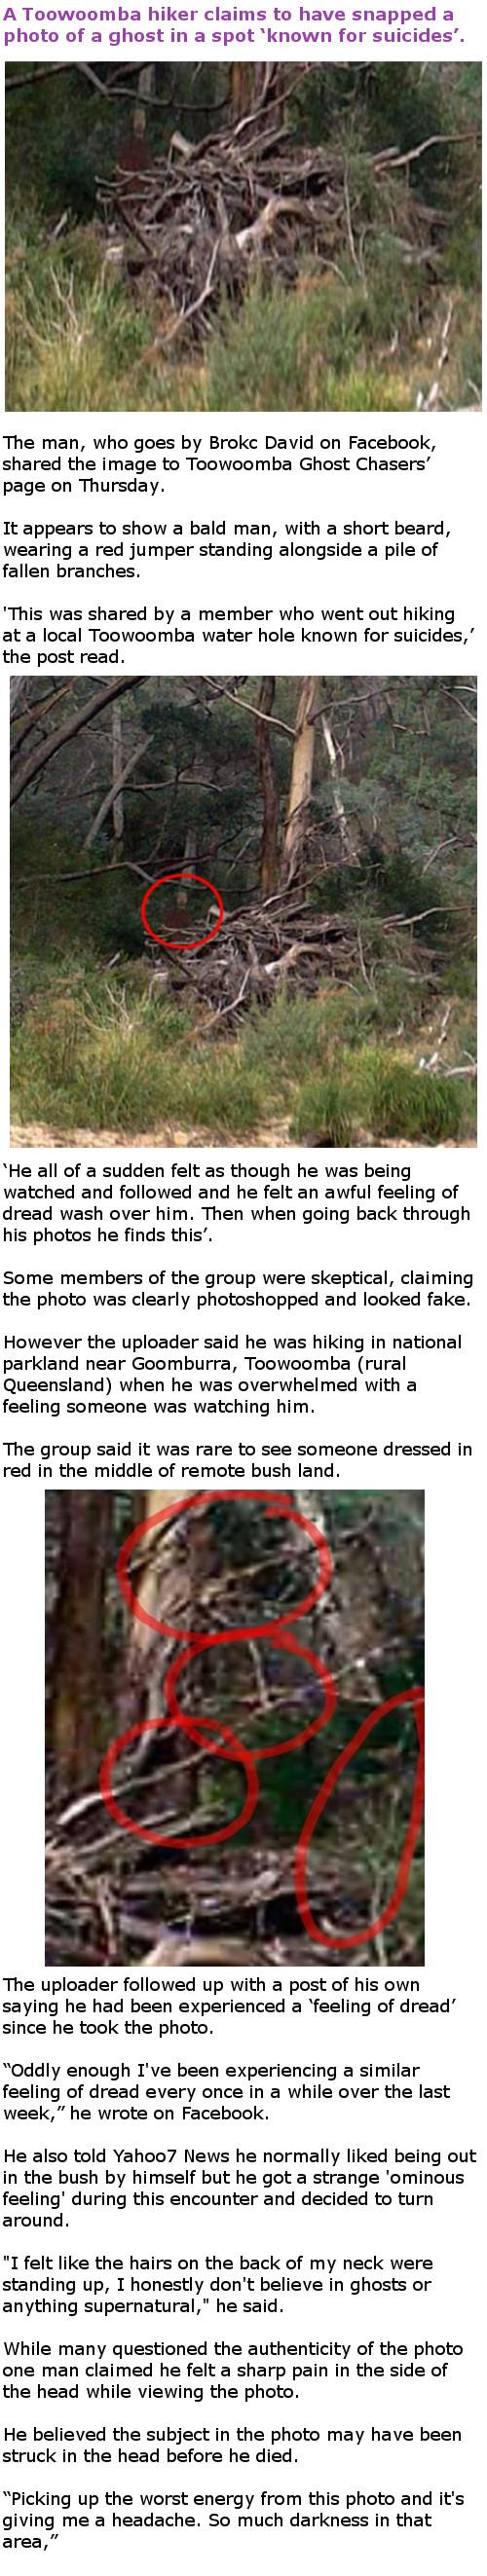 Aussie hiker claims to have taken a photo of a ghost in bushland